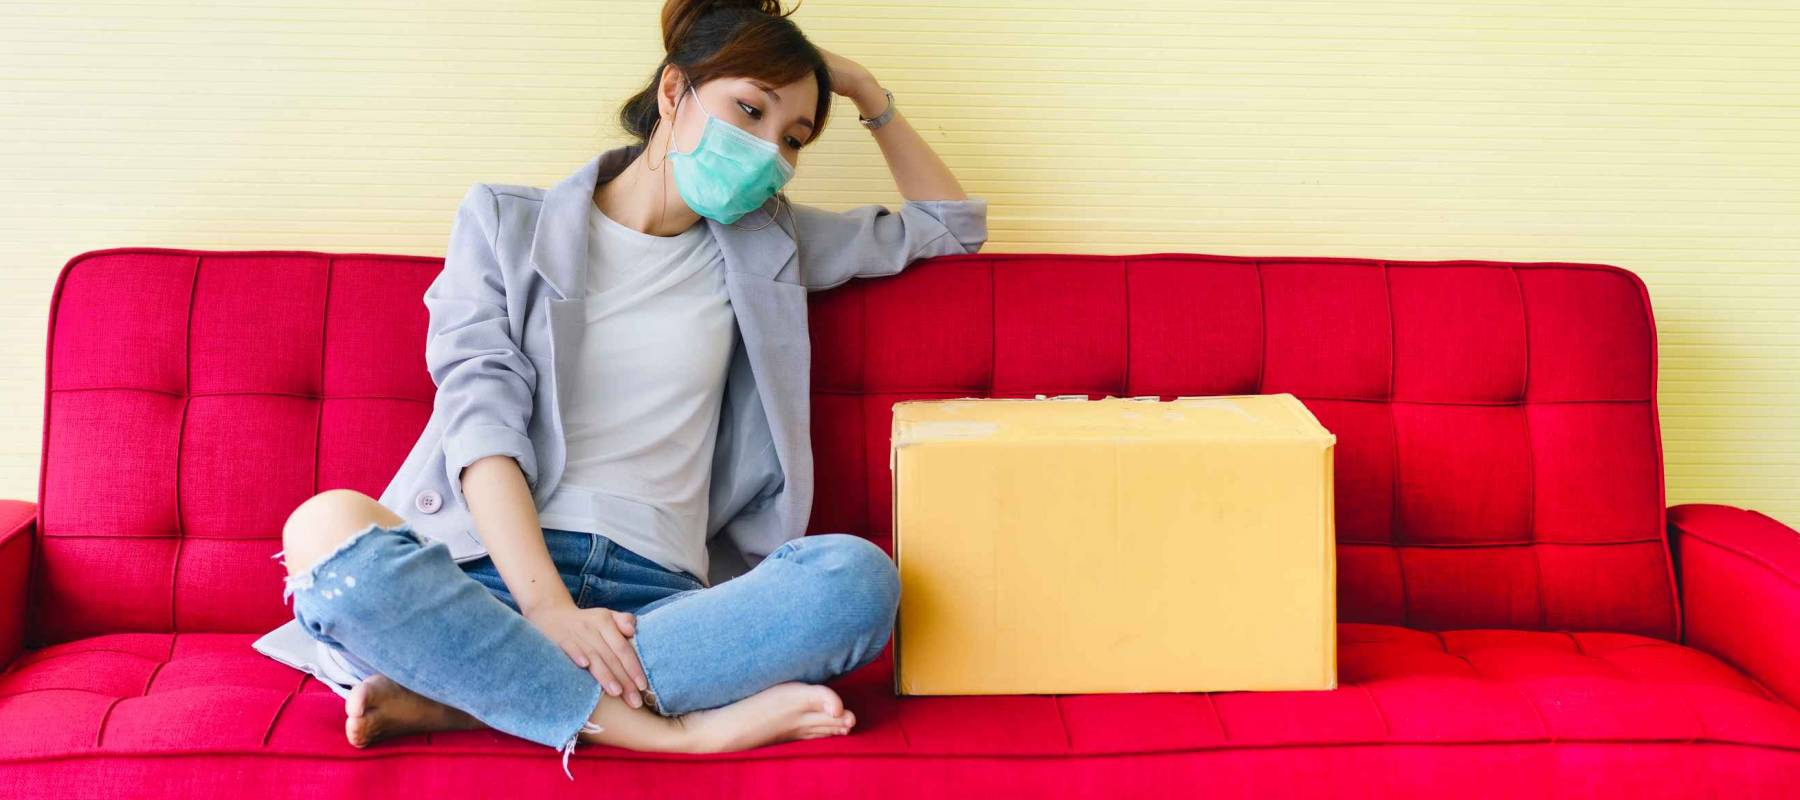 Young woman wearing mask sitting on red couch at home with feeling sad and disheartened from company layoff during covid-19, reduction cost. Pandemic disease and impacts every business.